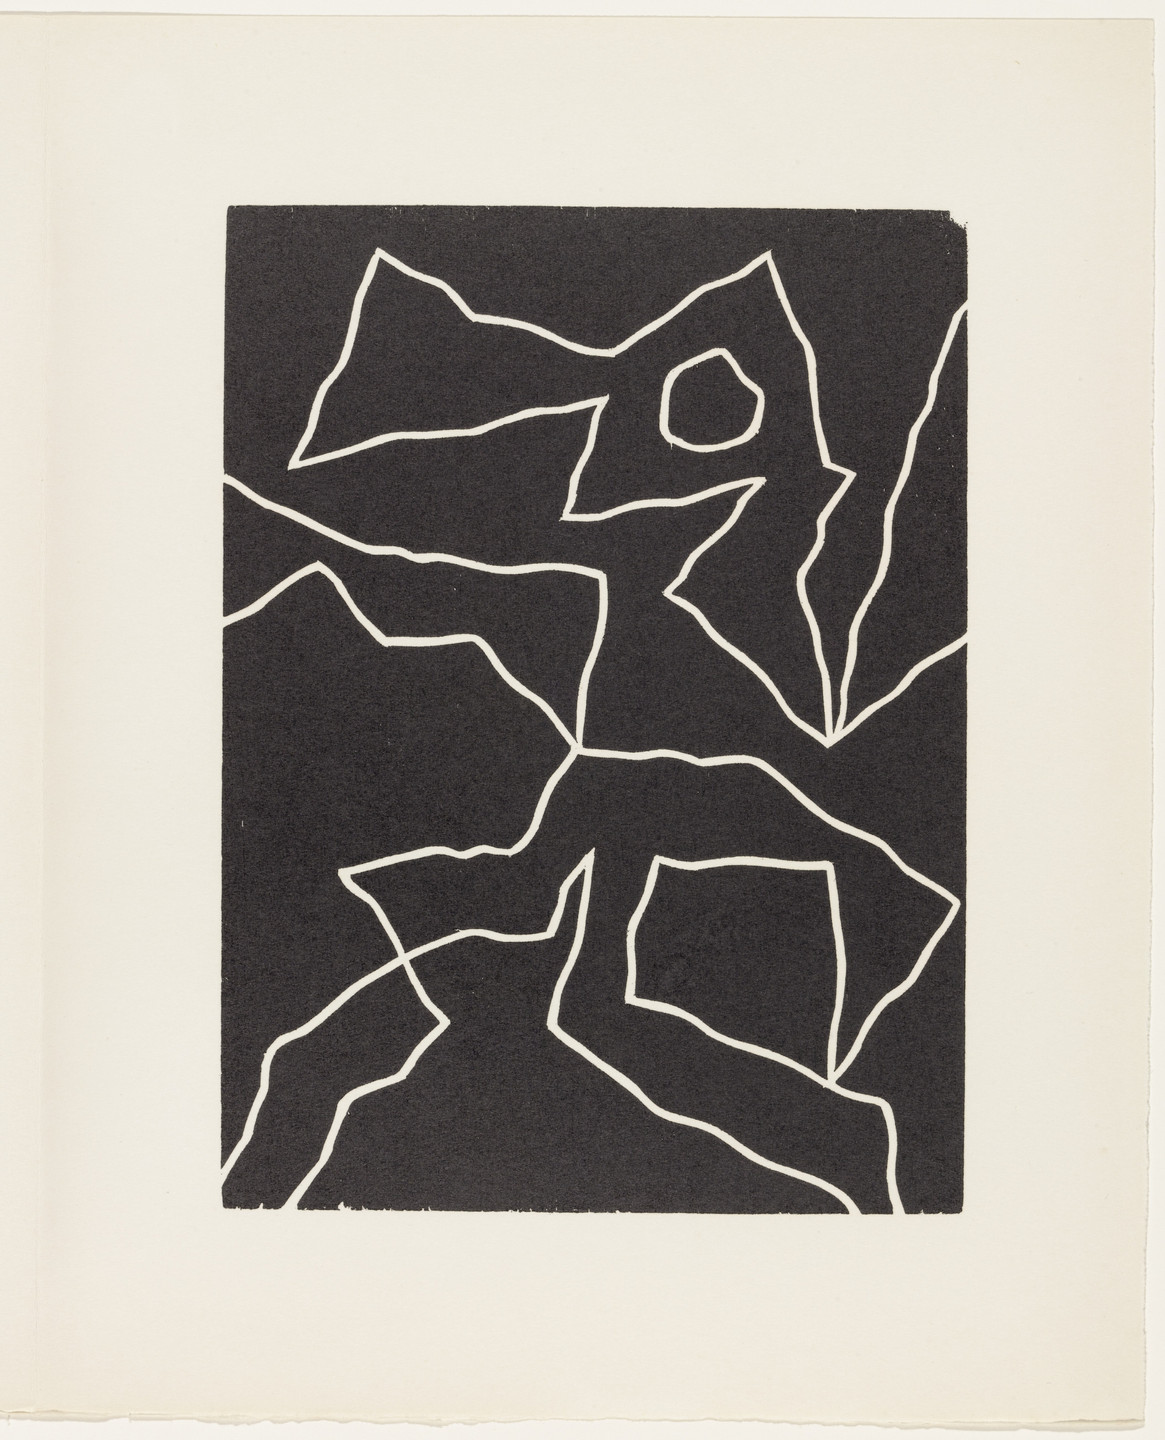 Jean (Hans) Arp. Mirage of a Voice (plate, page 123) from Dreams and Projects. 1951–52, published 1952